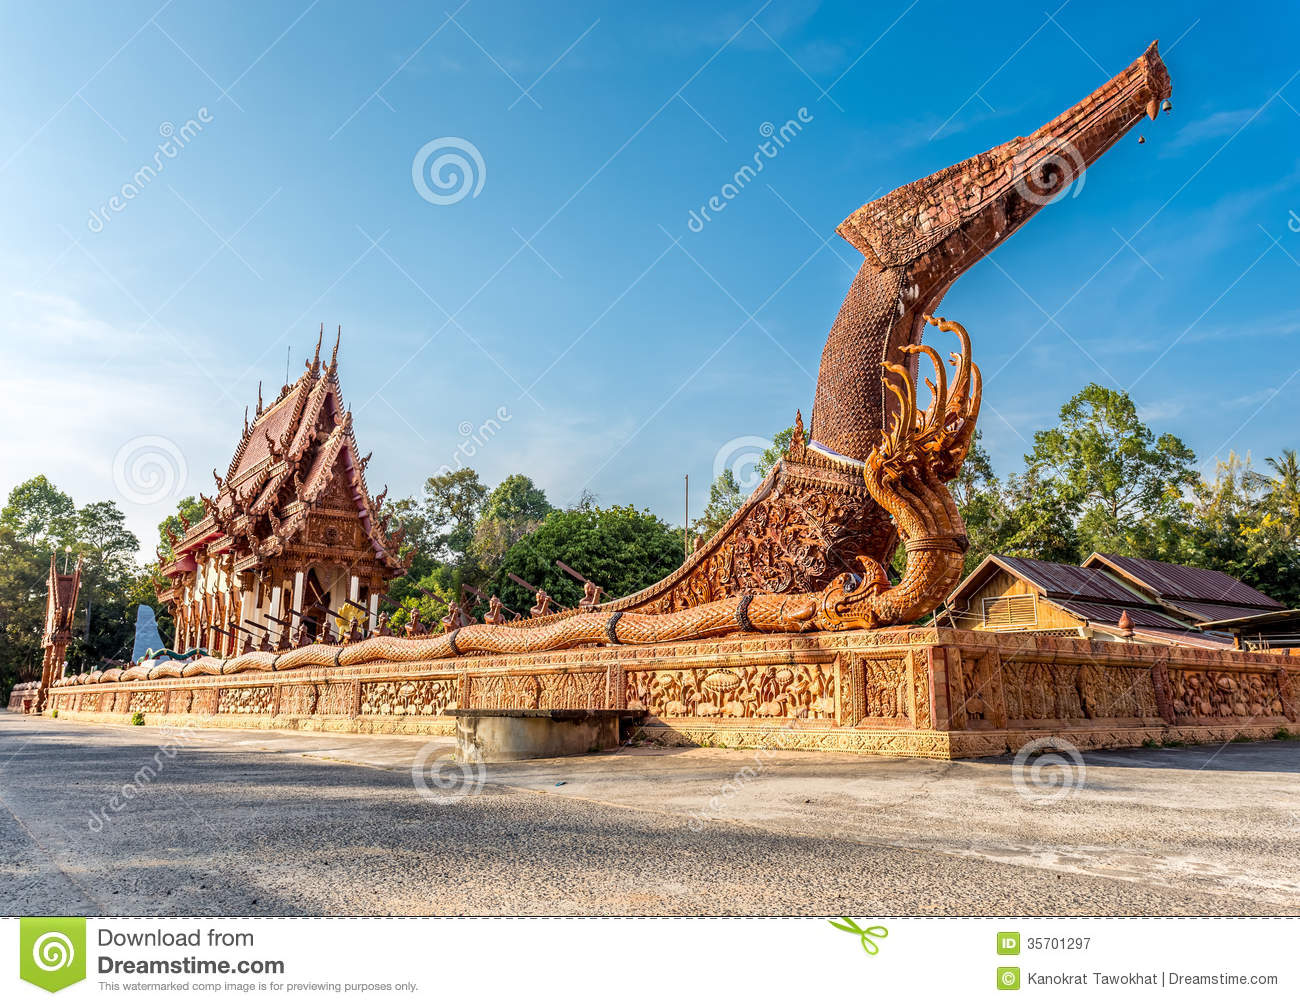 image Most beautiful kamsutra temple